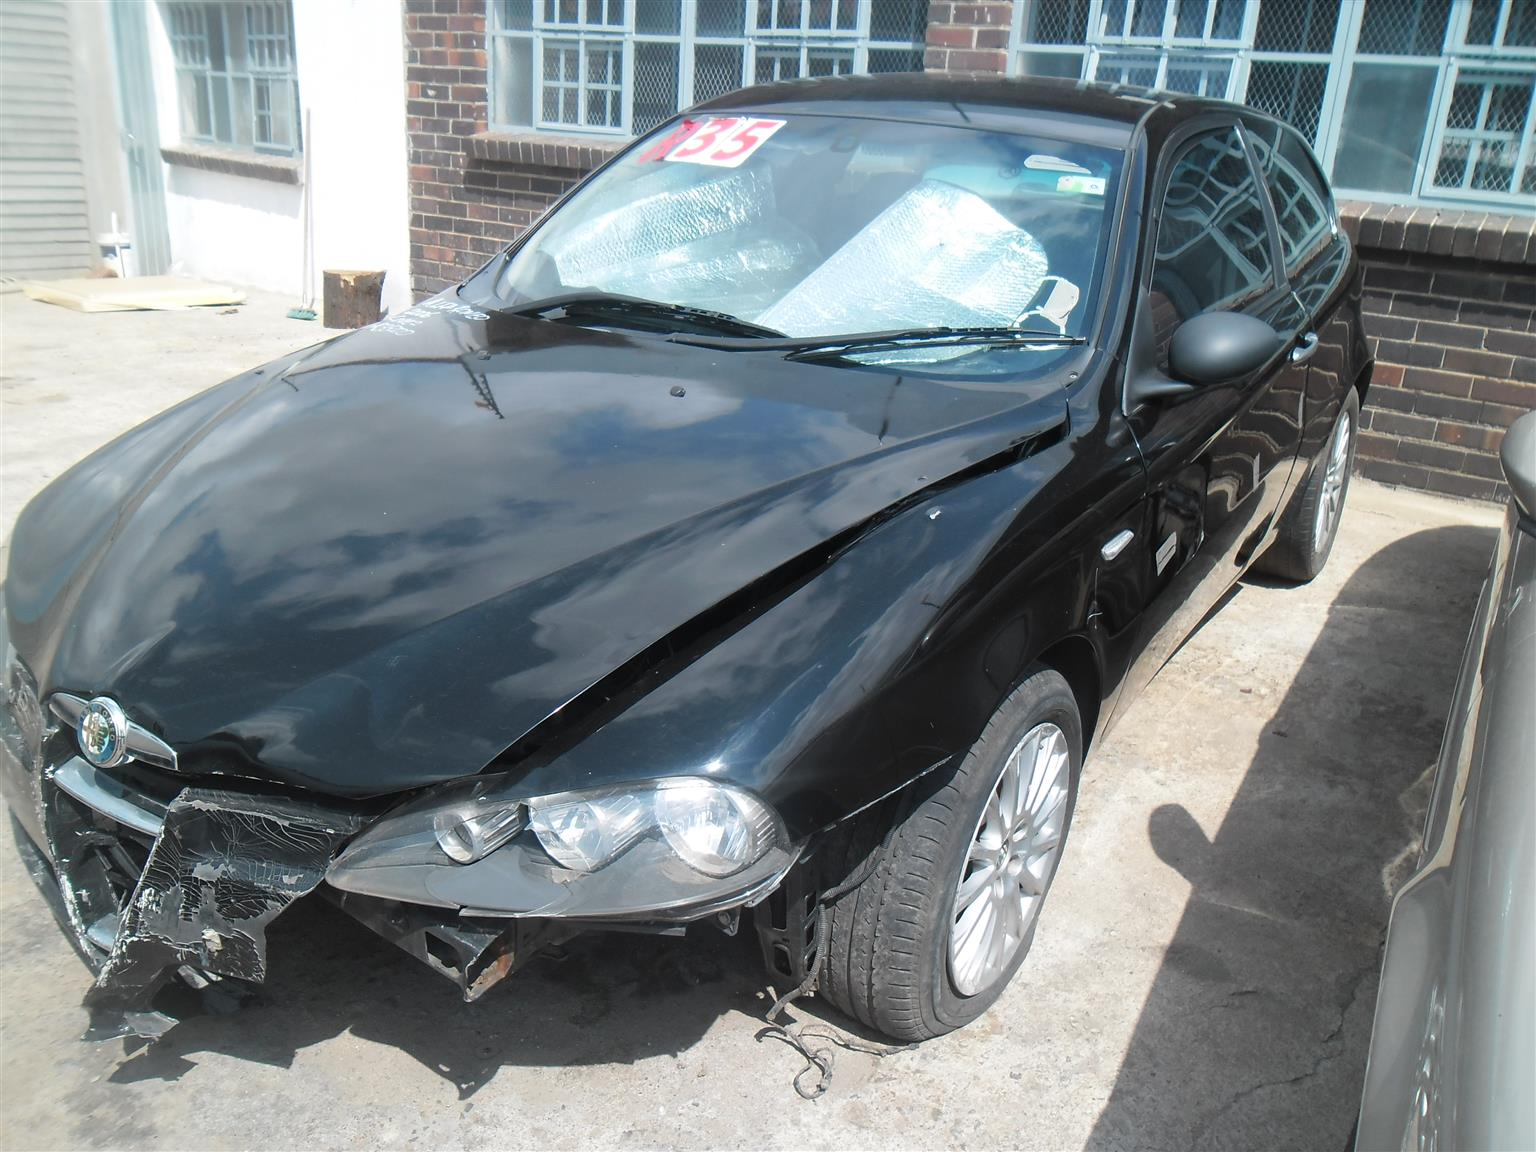 ALFA ROMEO 147 STRIPPING FOR PARTS DOORS FOR SALE